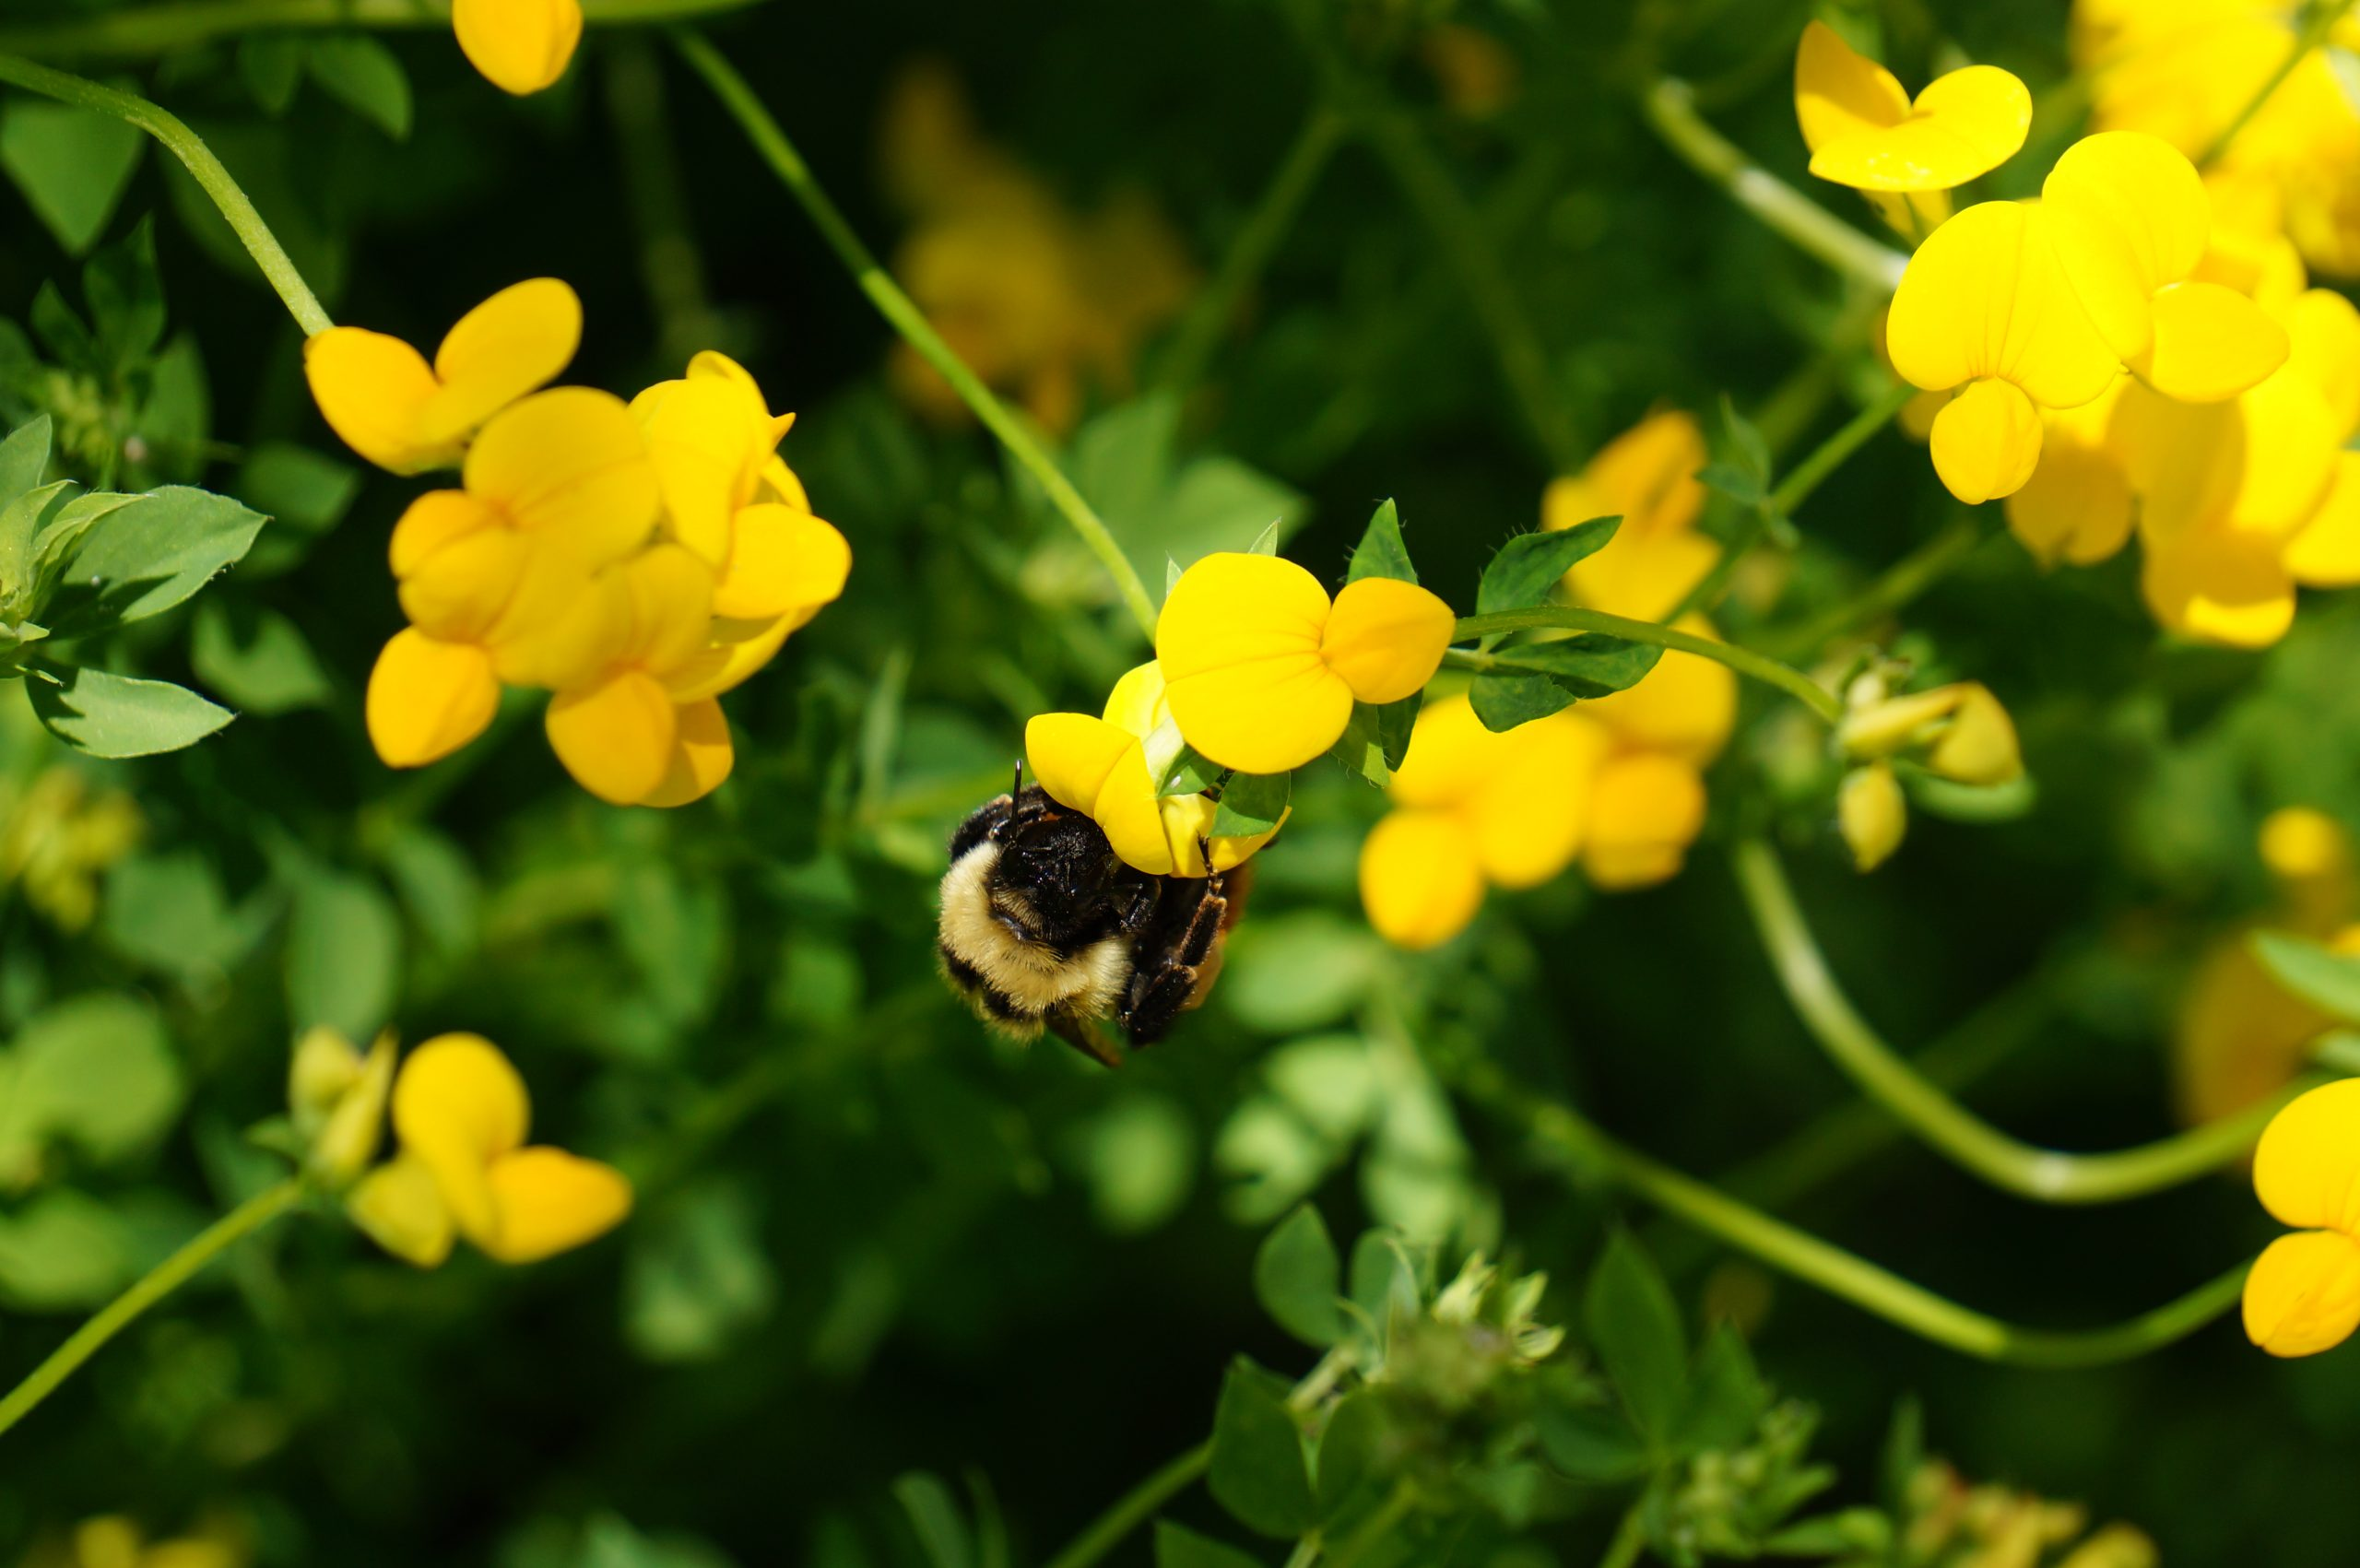 A bumble bee sits on small yellow flowers